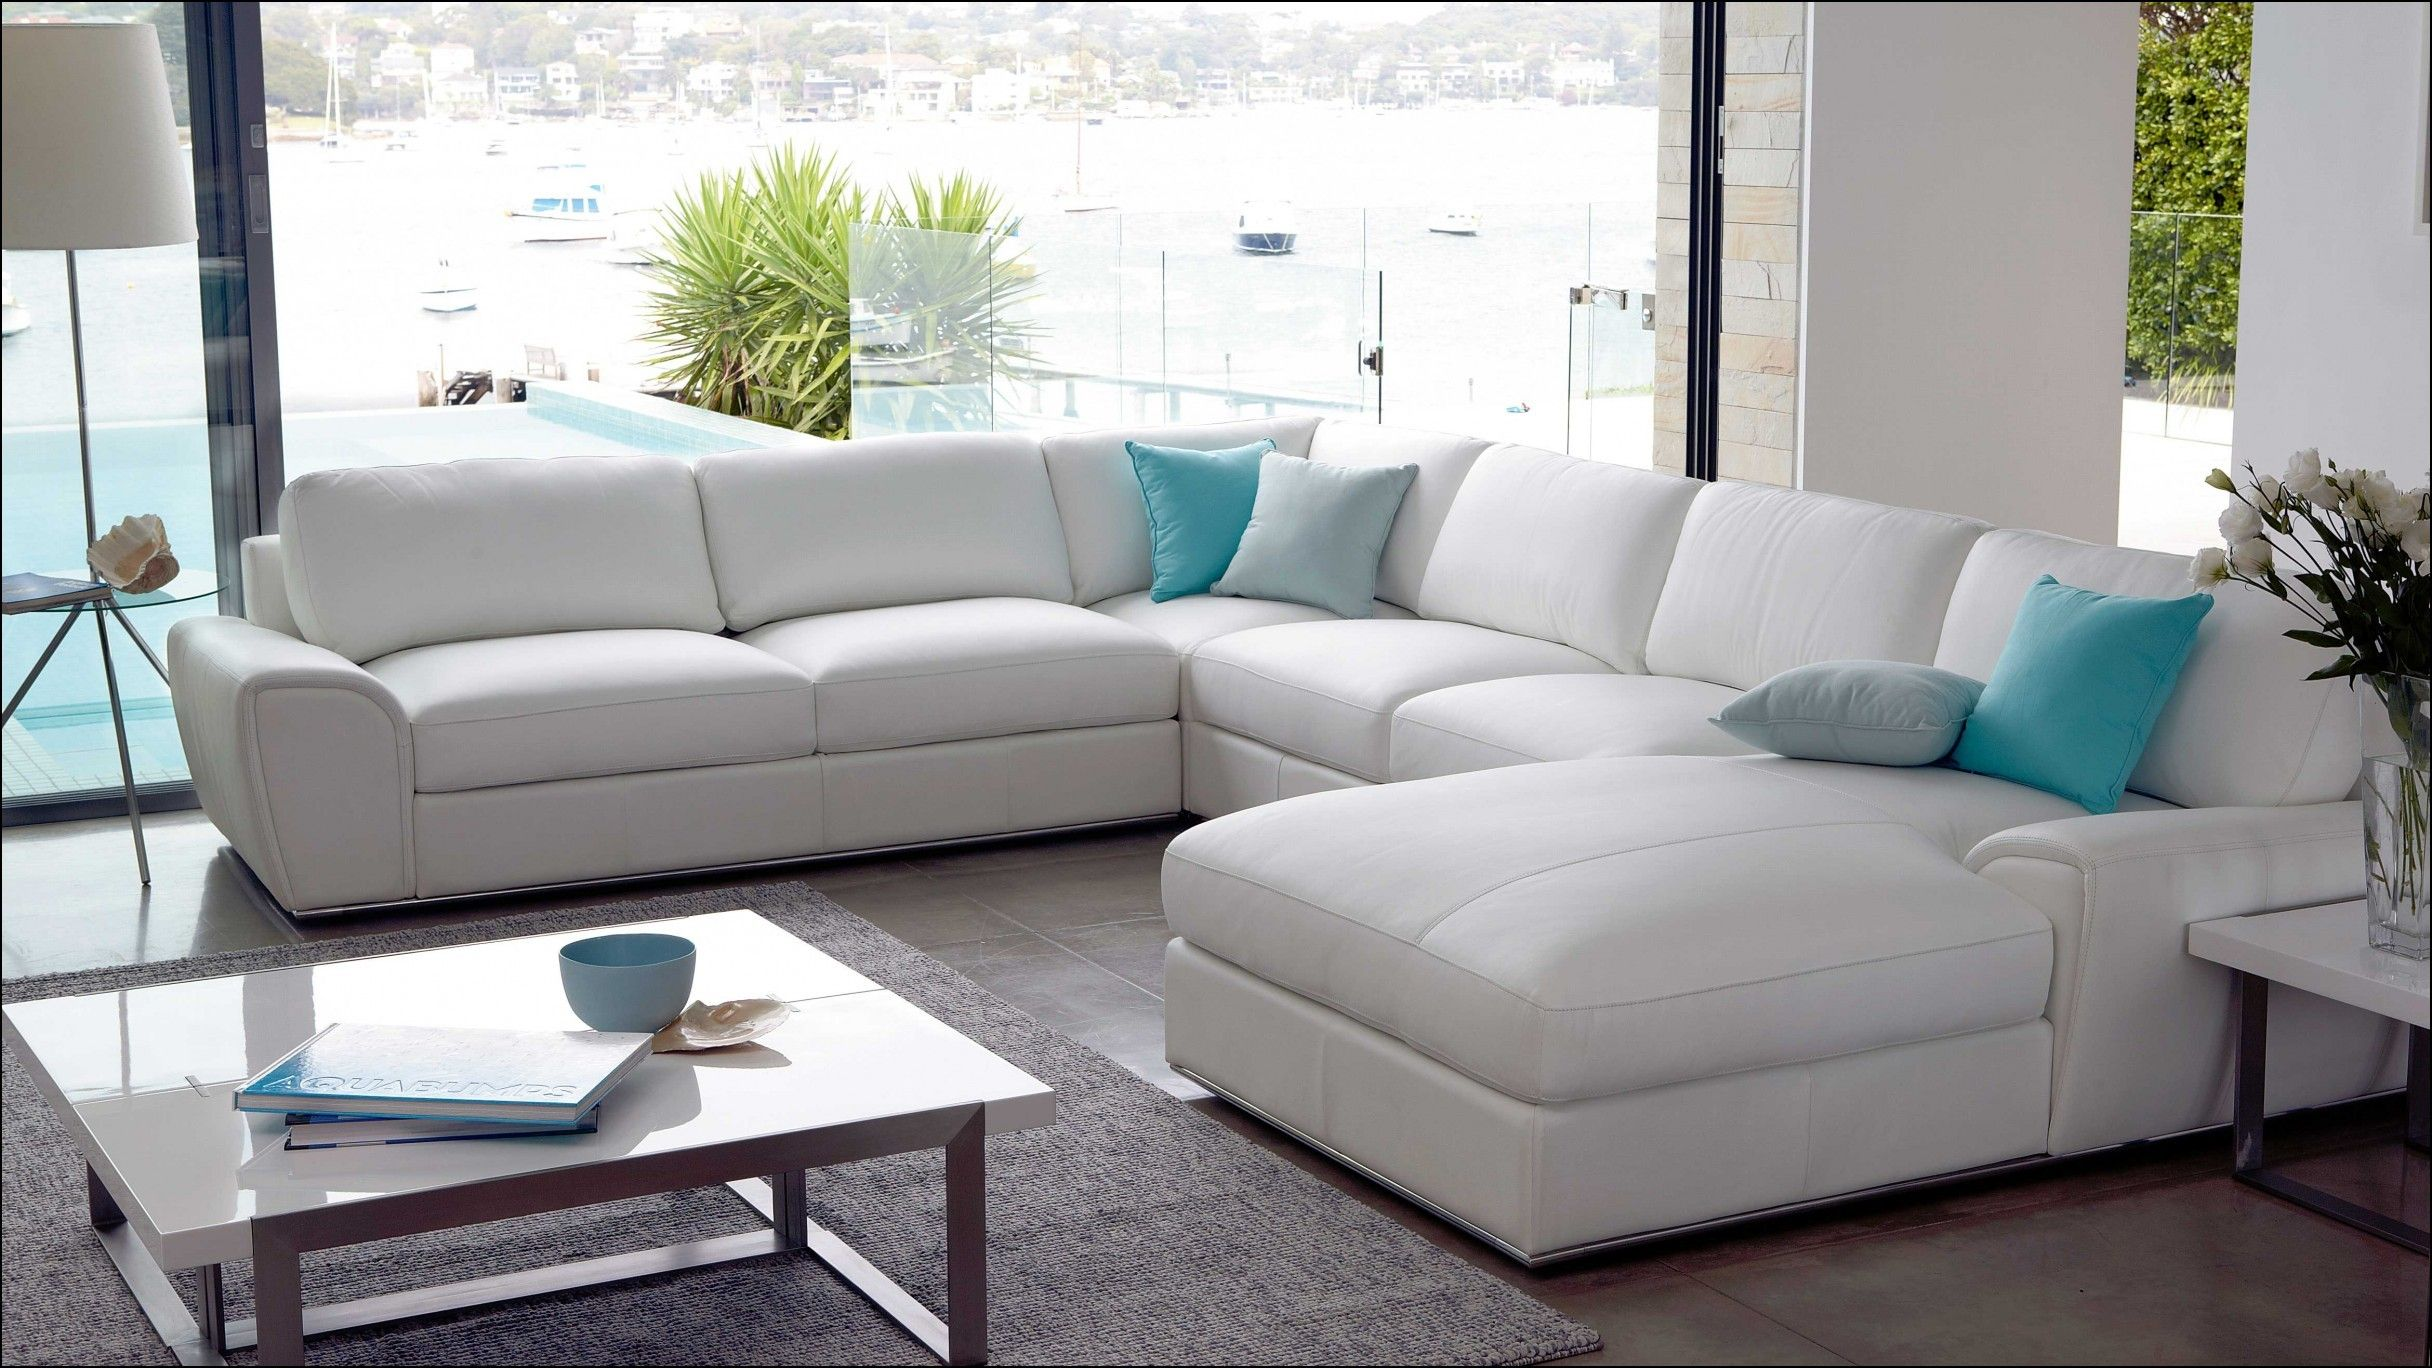 White Leather Modular Sofa